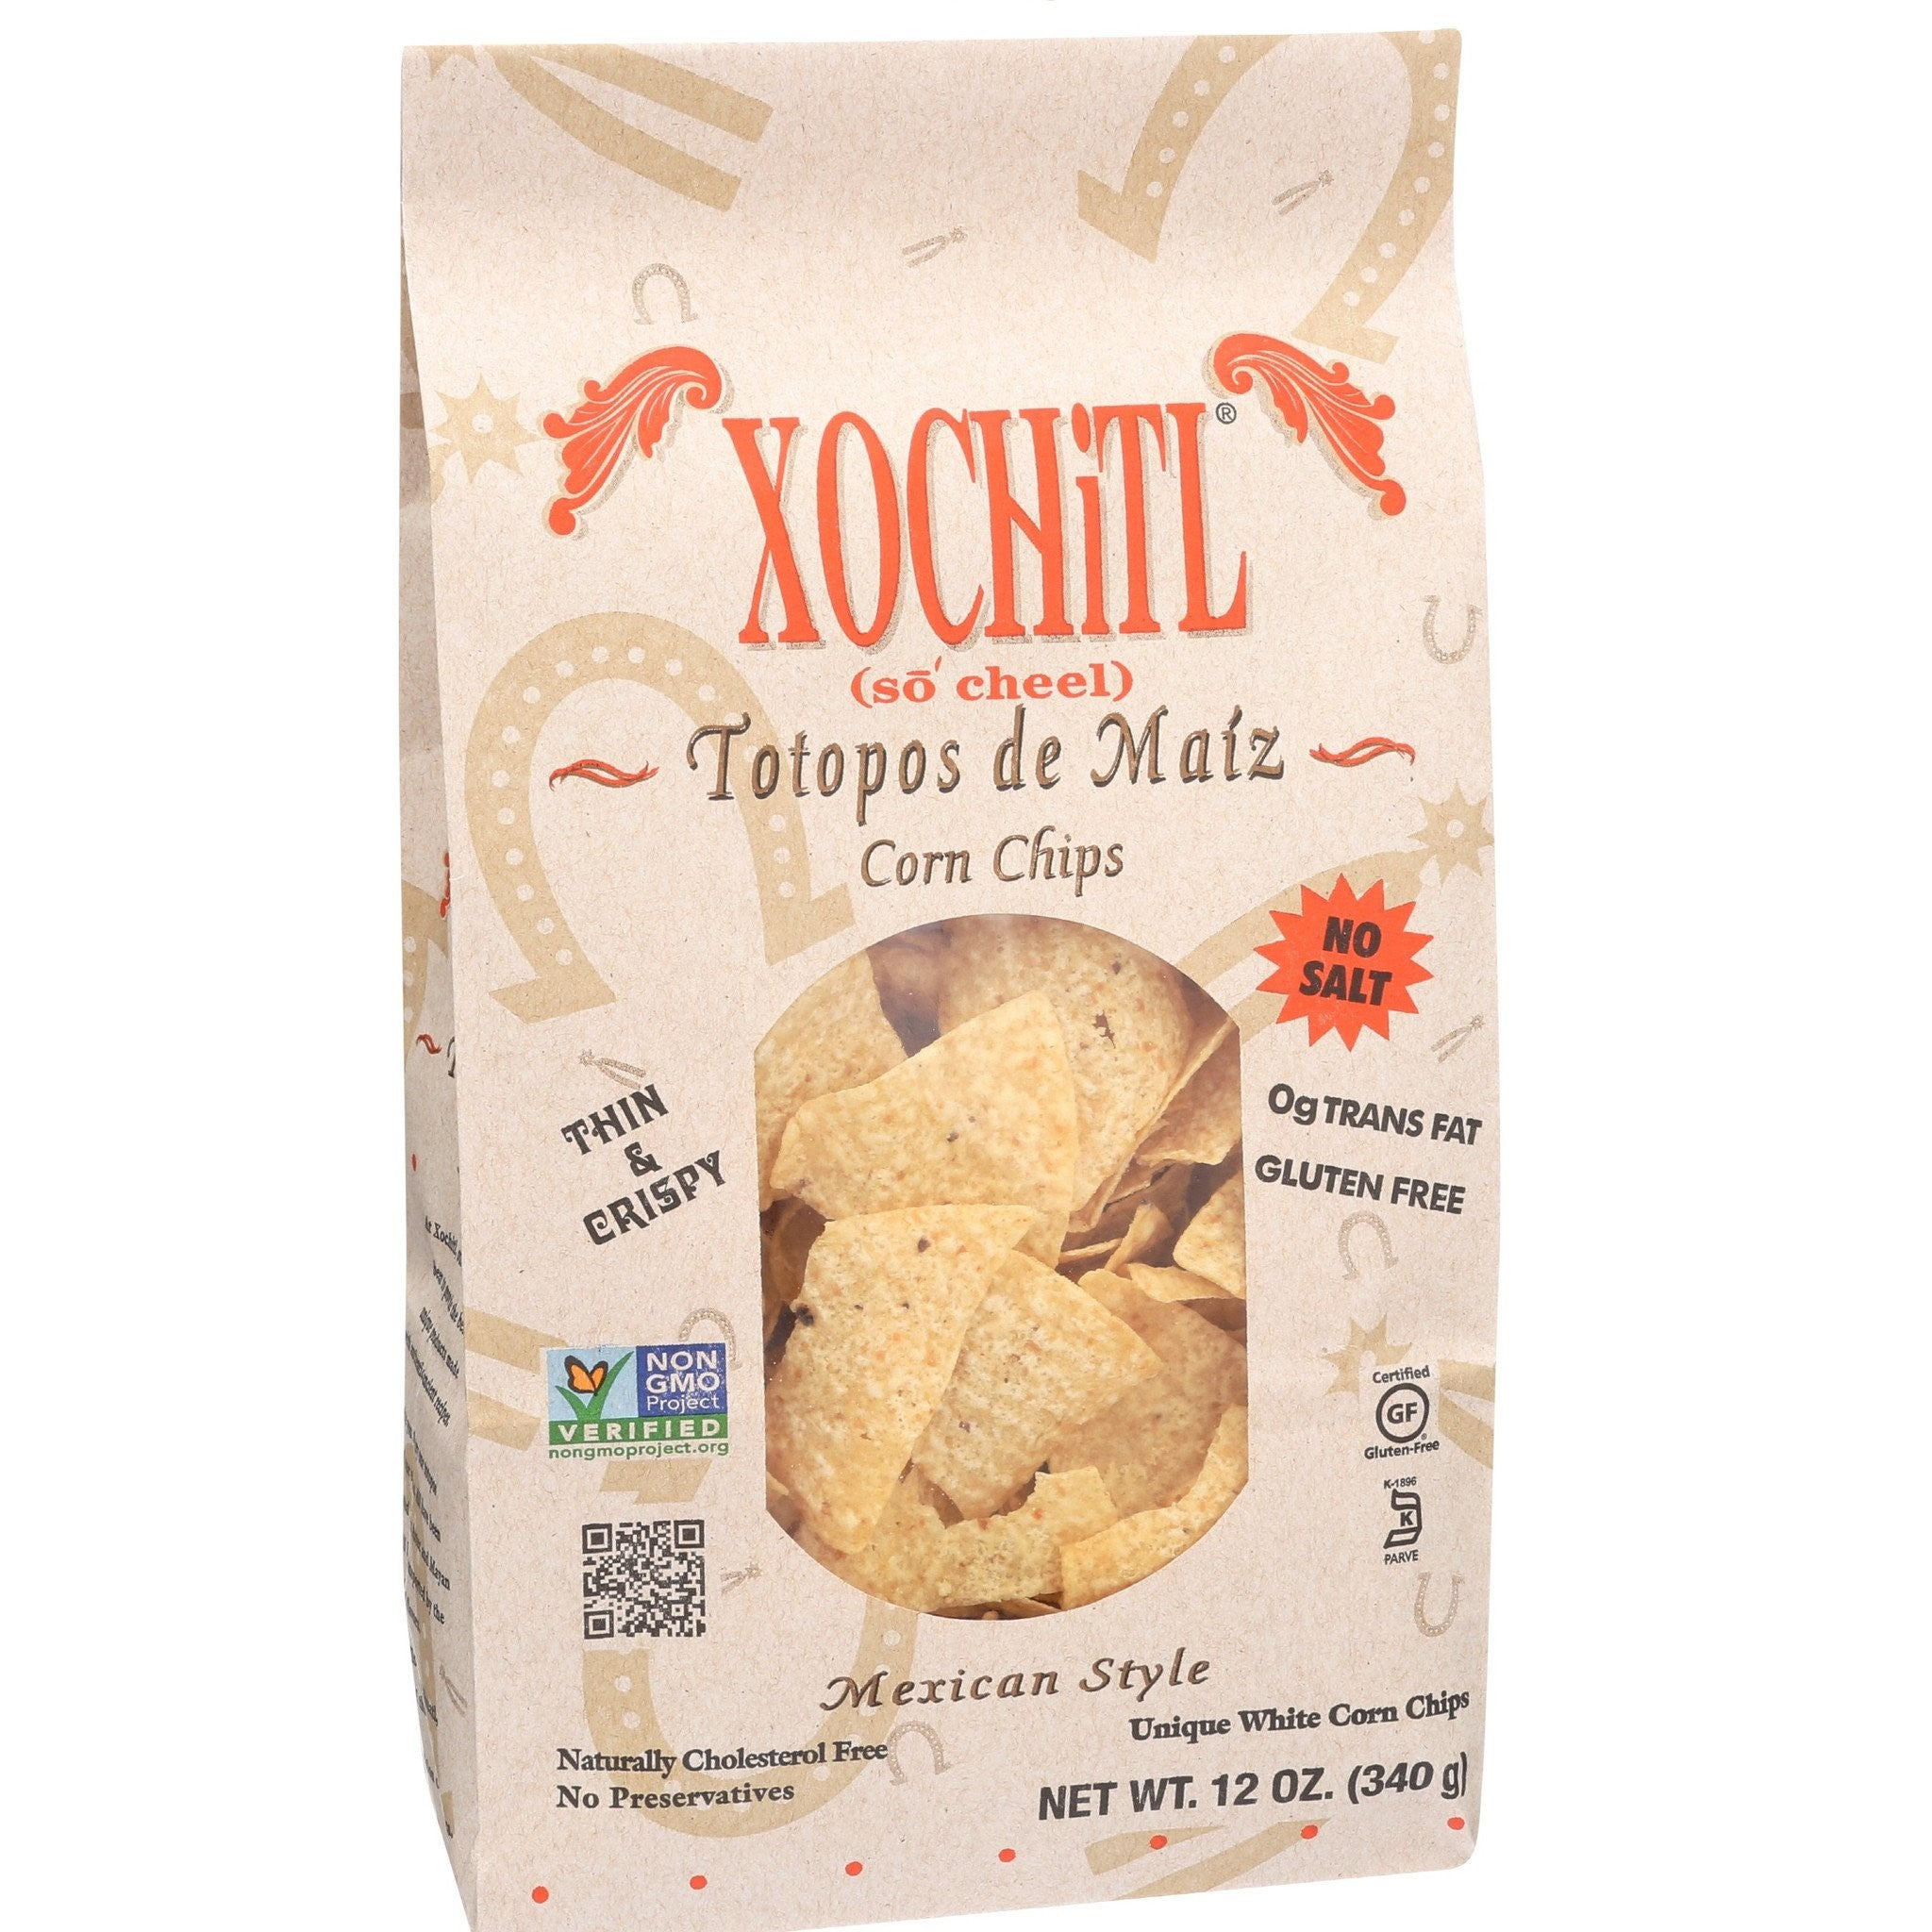 Xochitl No Salt Corn Chips, 12 OZ (Pack of 10)